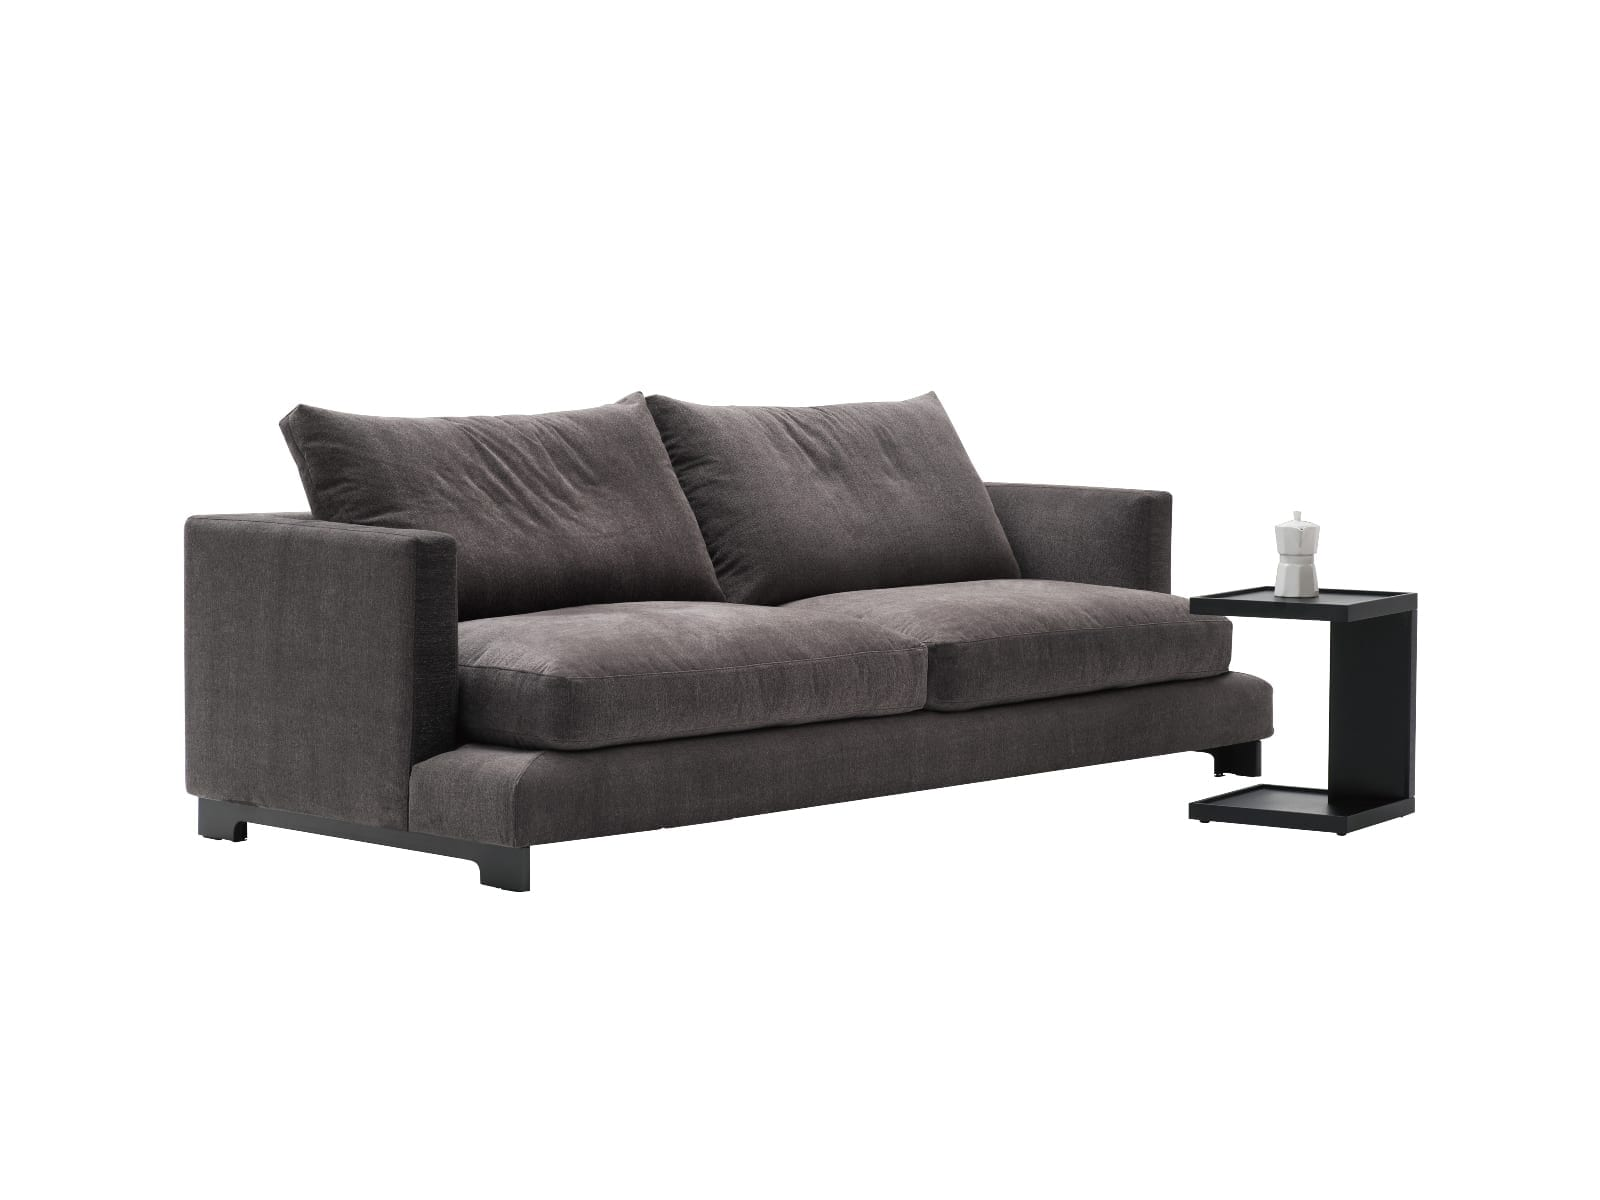 Camerich Lazytime Plus 3 Seater Sofa McKenzie Willis